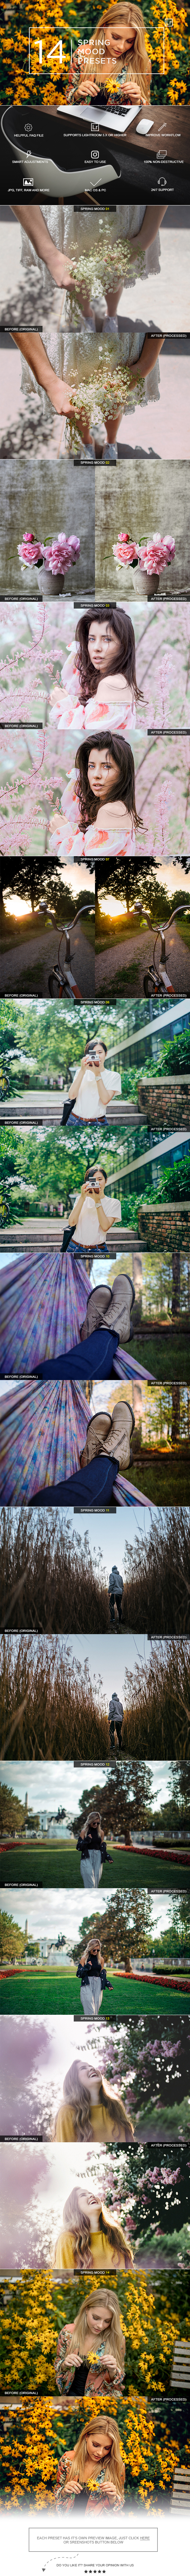 14 Spring Mood Presets - Portrait Lightroom Presets